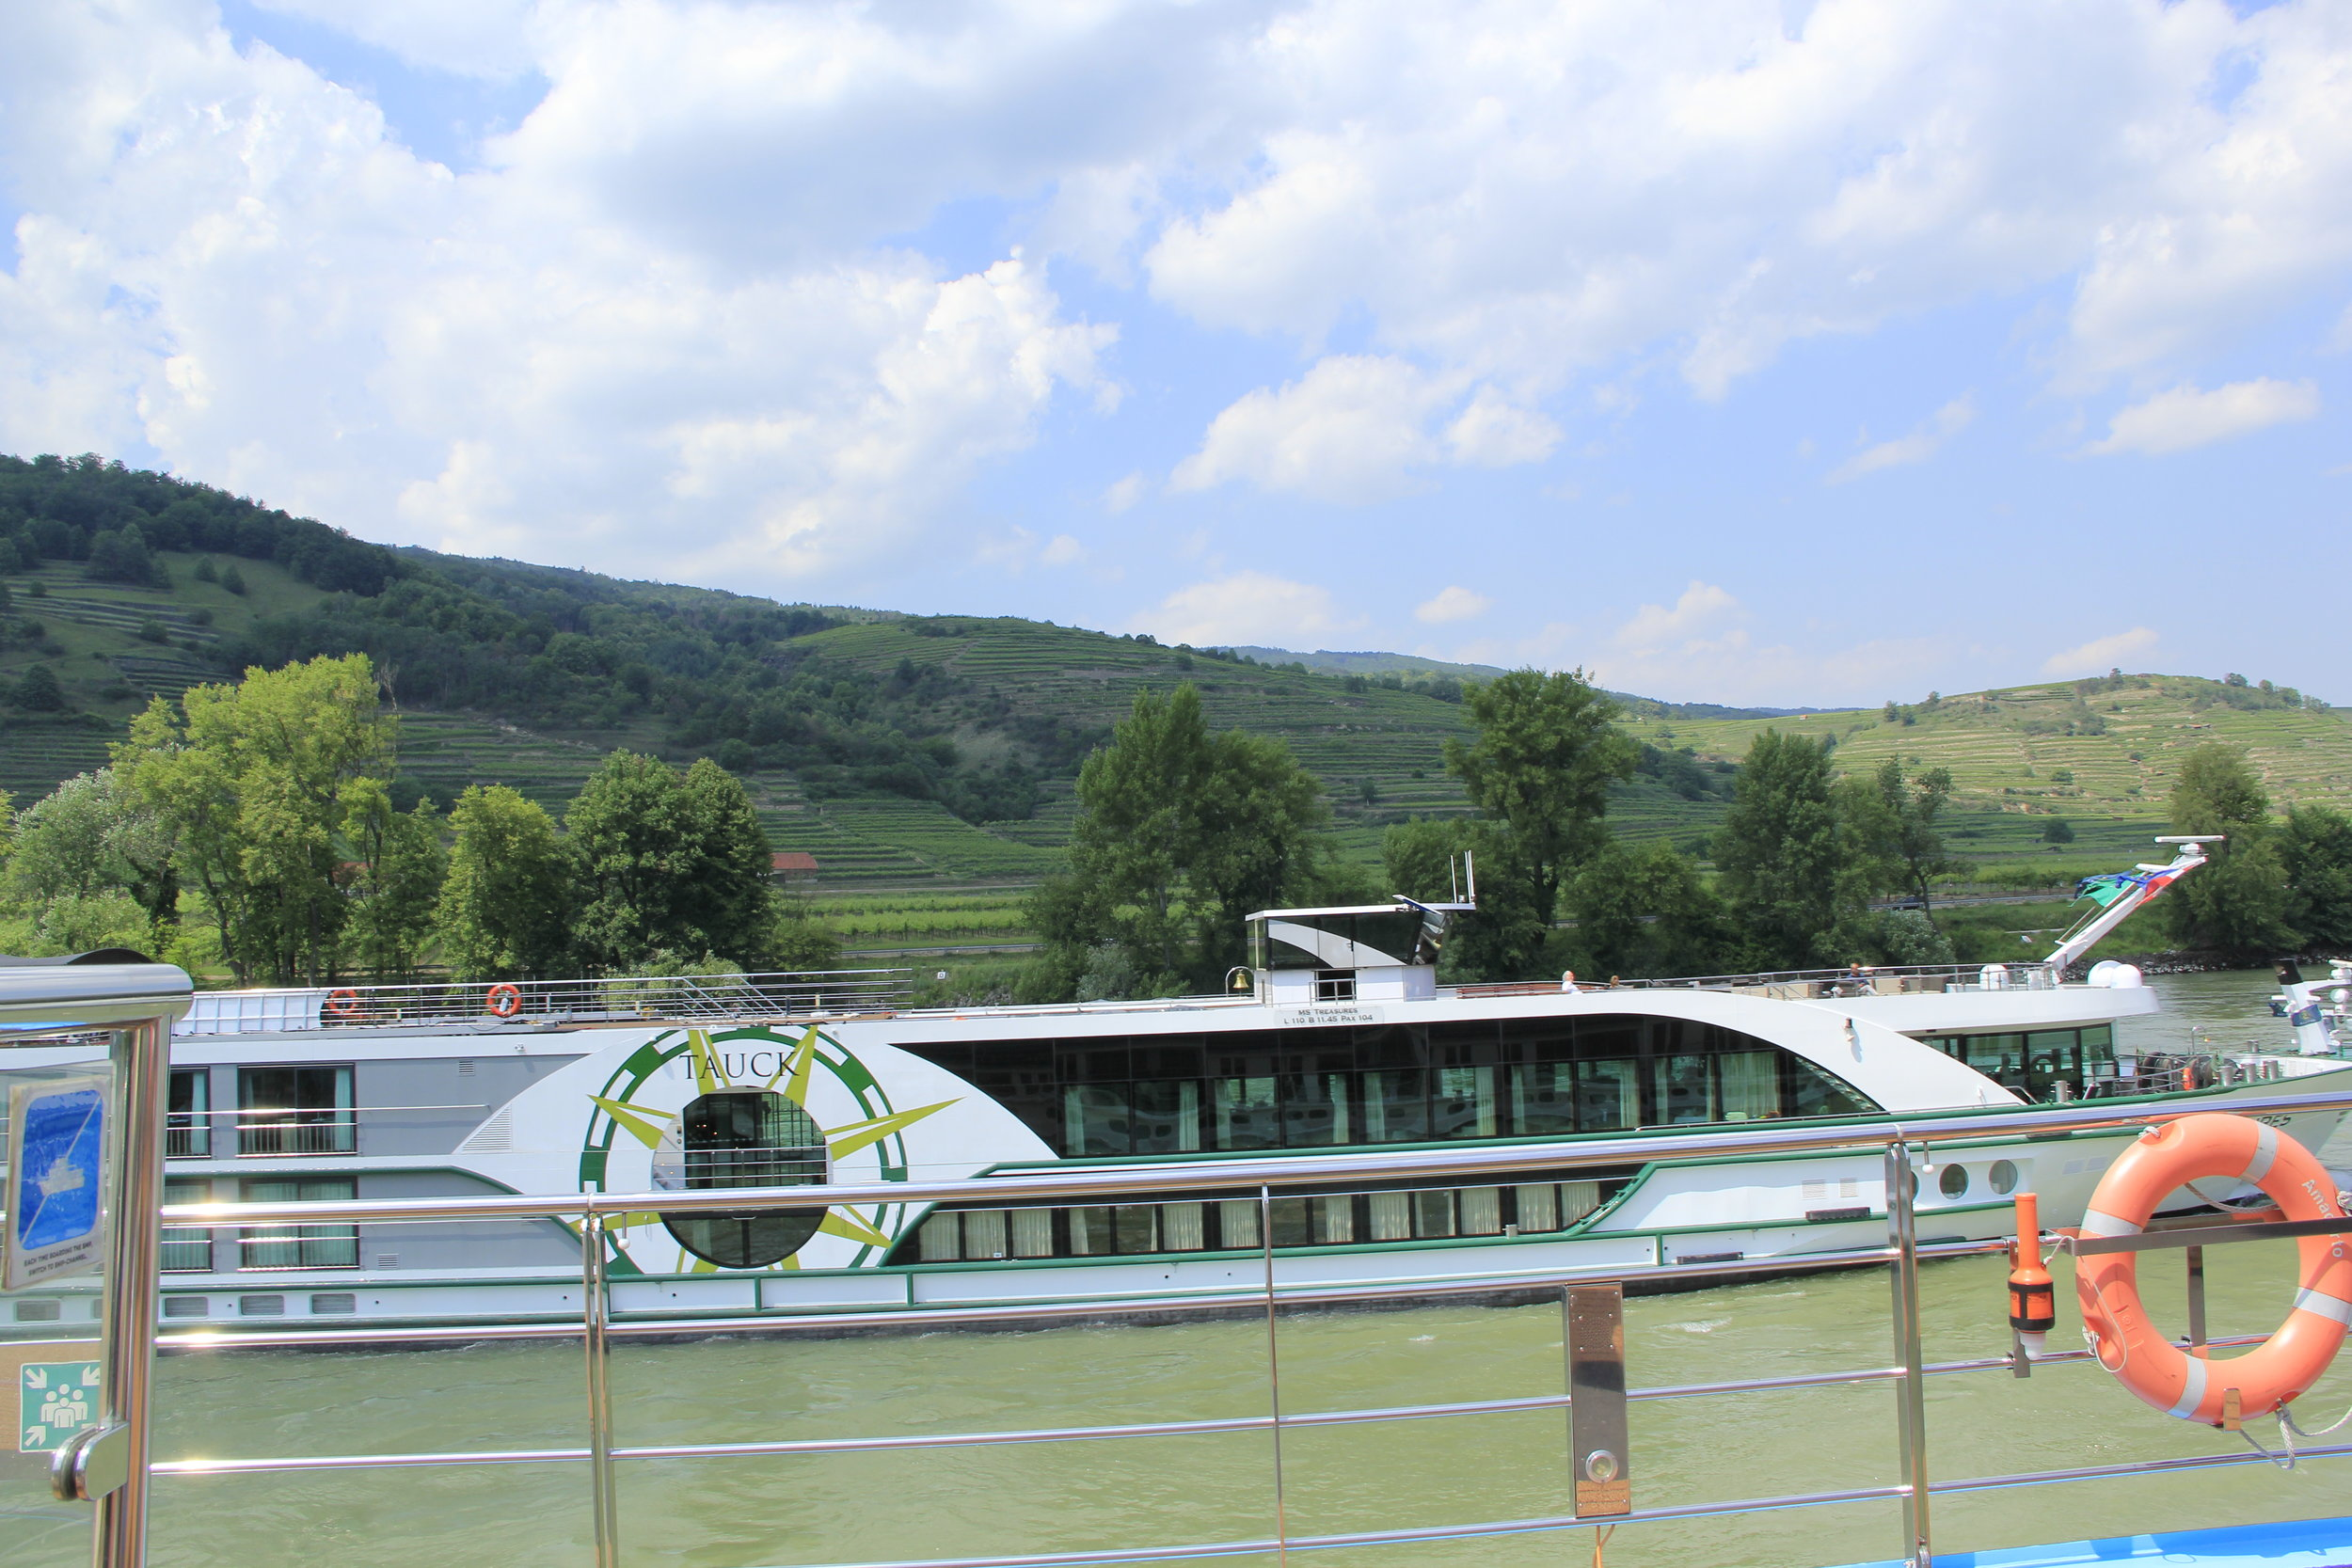 Tauck Treasures Rivership—this picture was taken from an AmaWaterways rivership in 2018